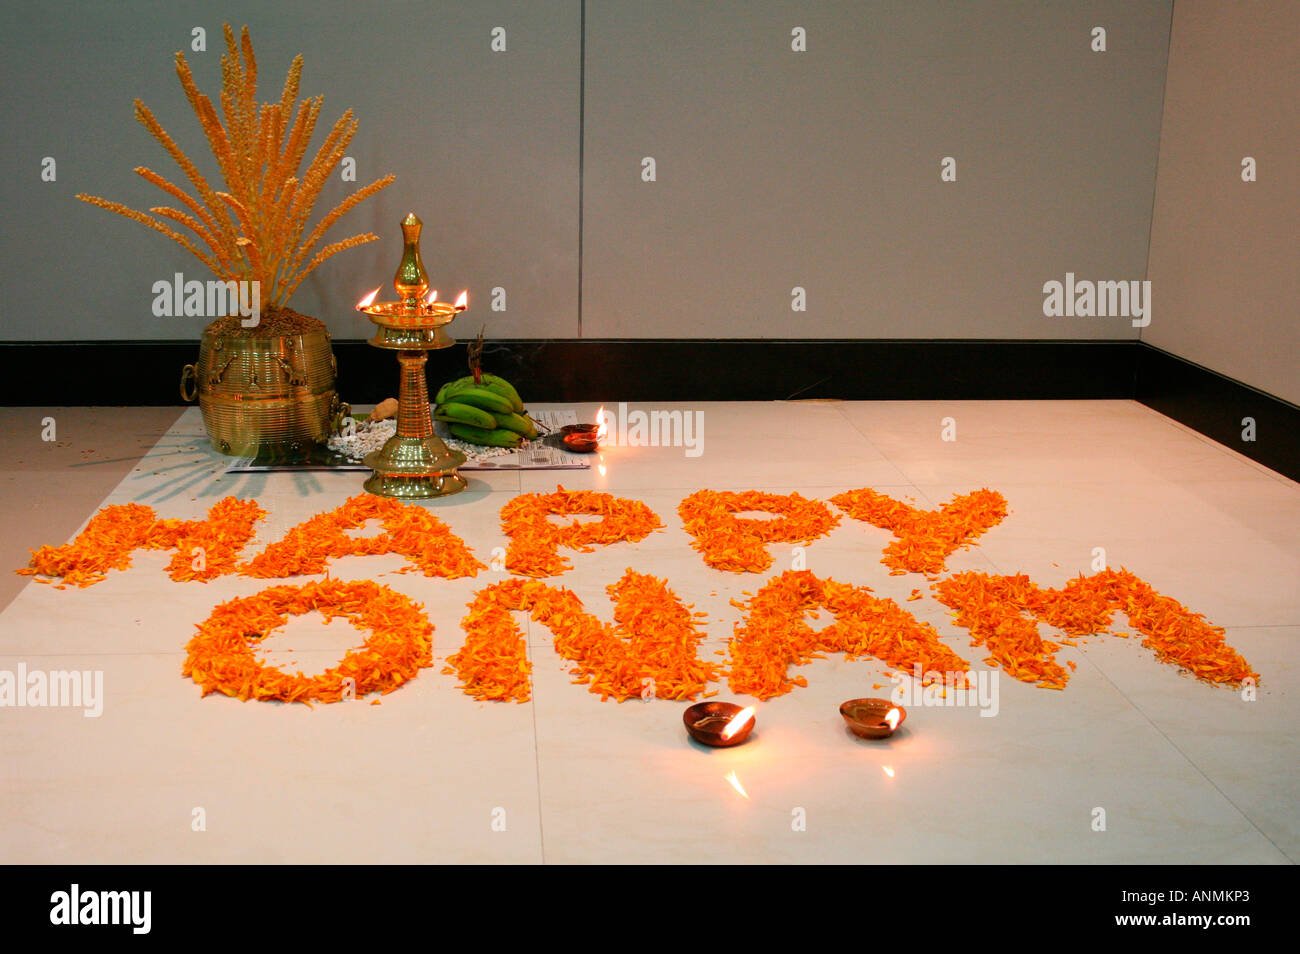 Onam greetings stock photos onam greetings stock images alamy onam greetings written on floor with flowers before a traditional kerala style decoration stock image m4hsunfo